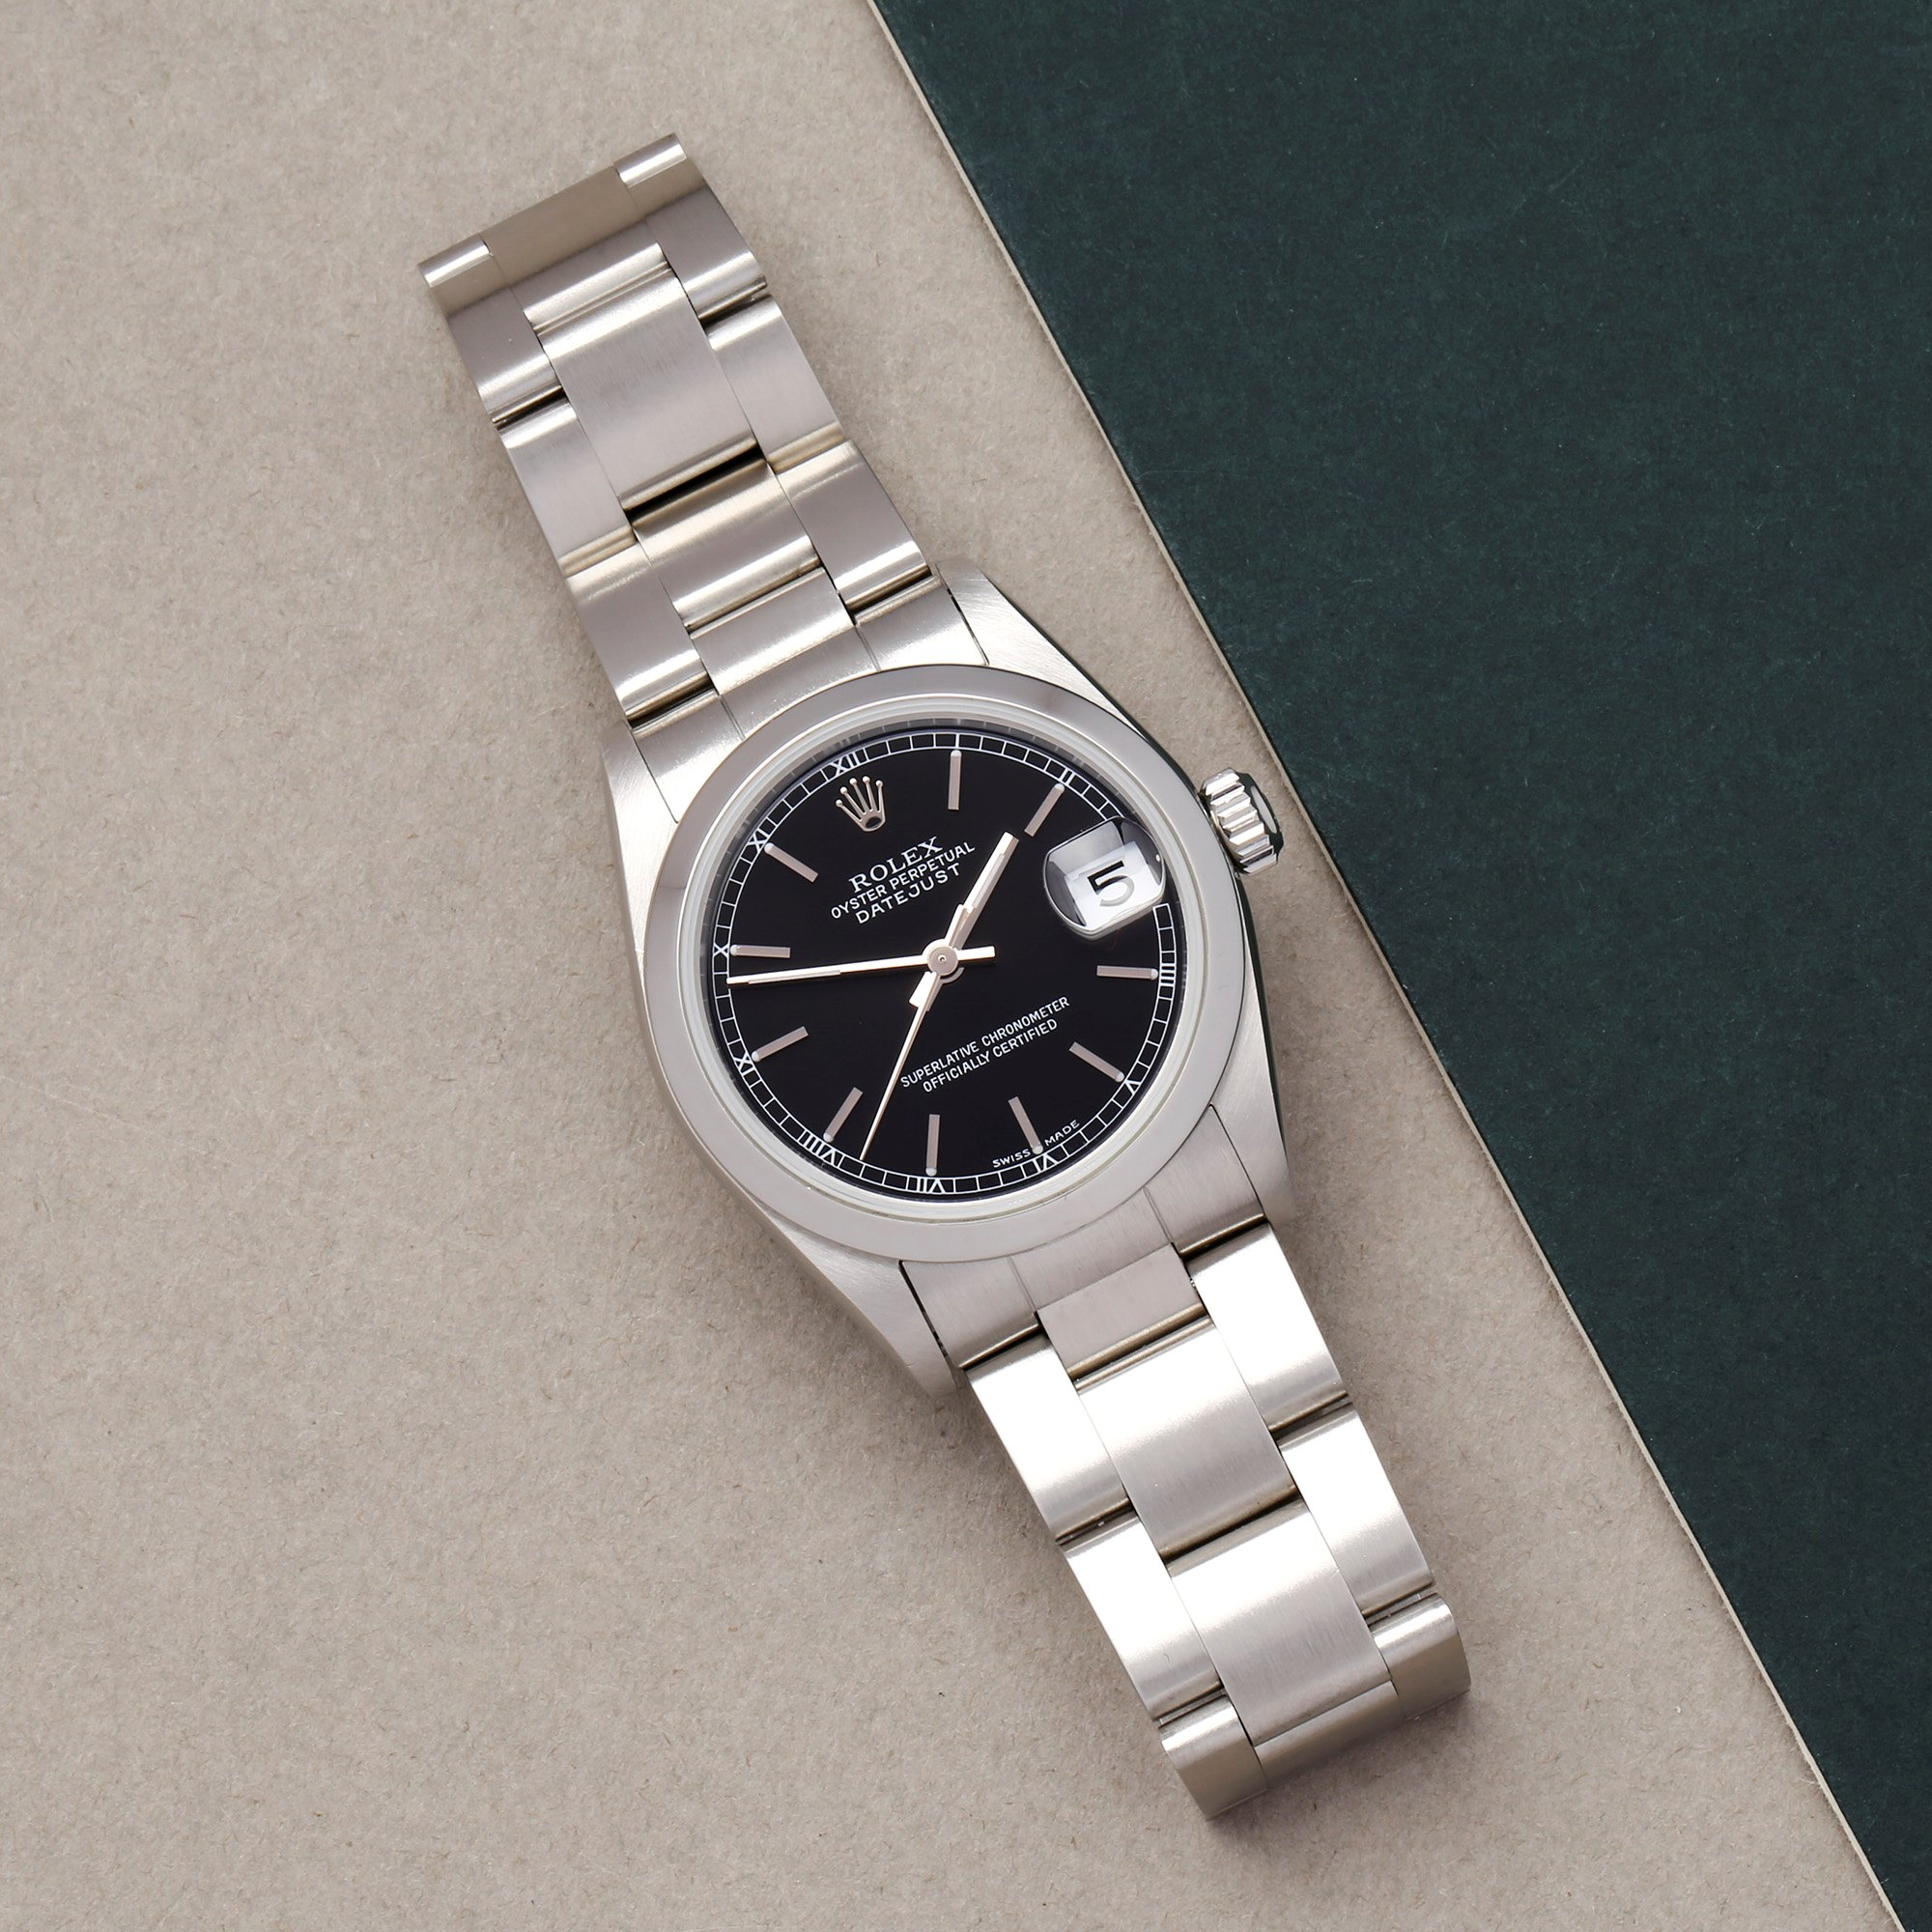 Rolex Datejust 31 78240 Ladies Stainless Steel Watch - Image 7 of 10